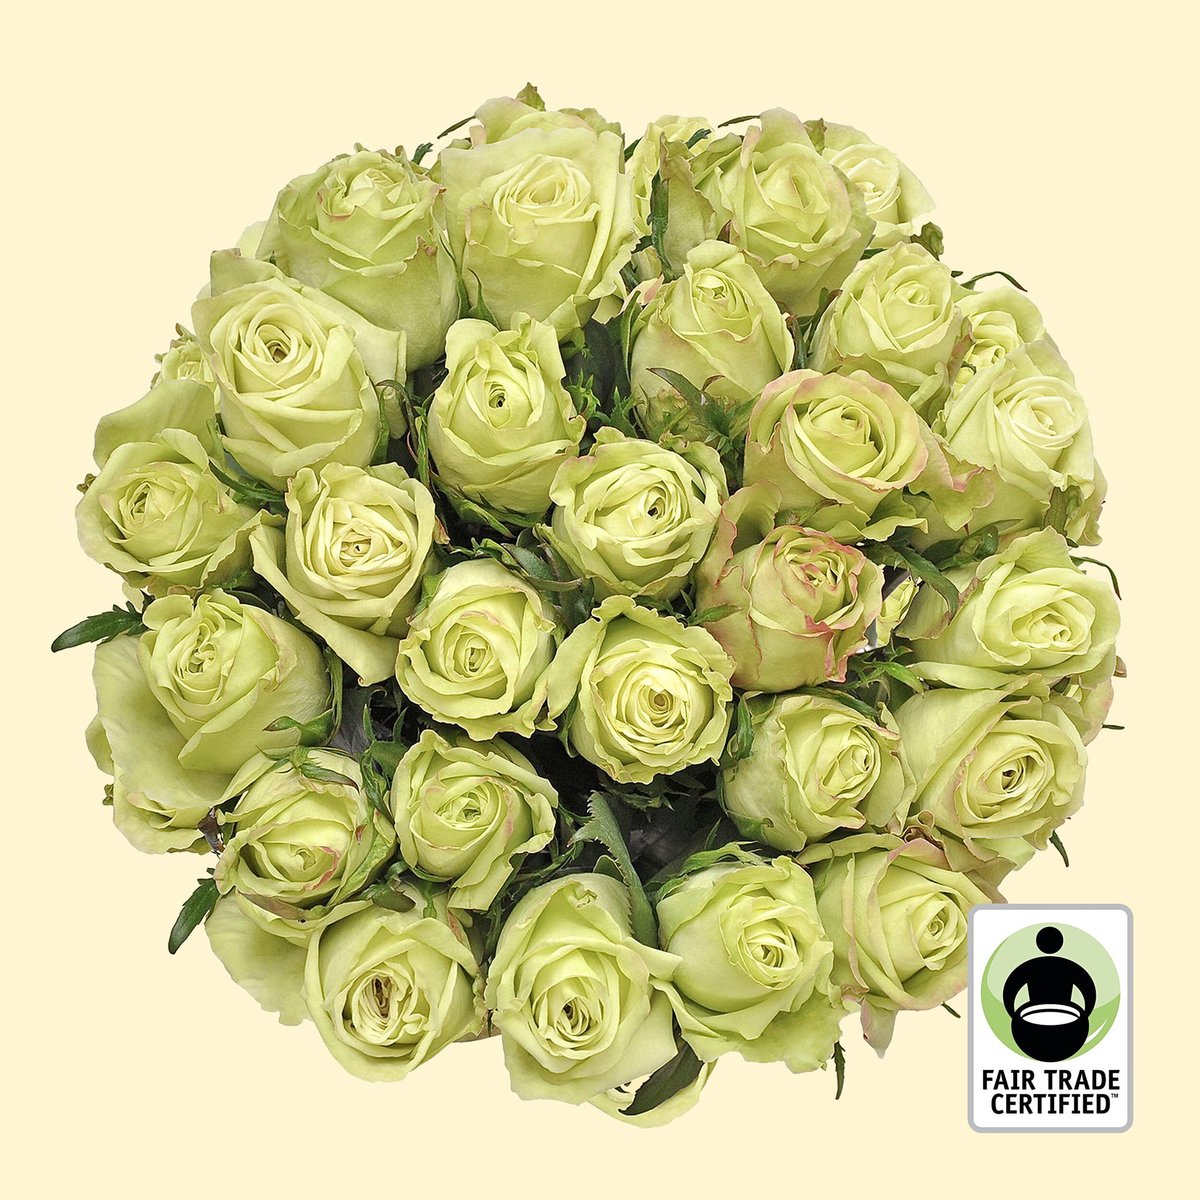 We're loving our Fair Trade Green roses, perfect for St. Patrick's Day!   http://bit.ly/fairtradegreenroses…  #bloomingmore #greenroses #roses #fairtrade #florallove #seasonalfloweralliance #floralfix #floweraddict #moodforfloral #flowerstalking #florallife #flowersoftheworldpic.twitter.com/tbLgZdOCeE